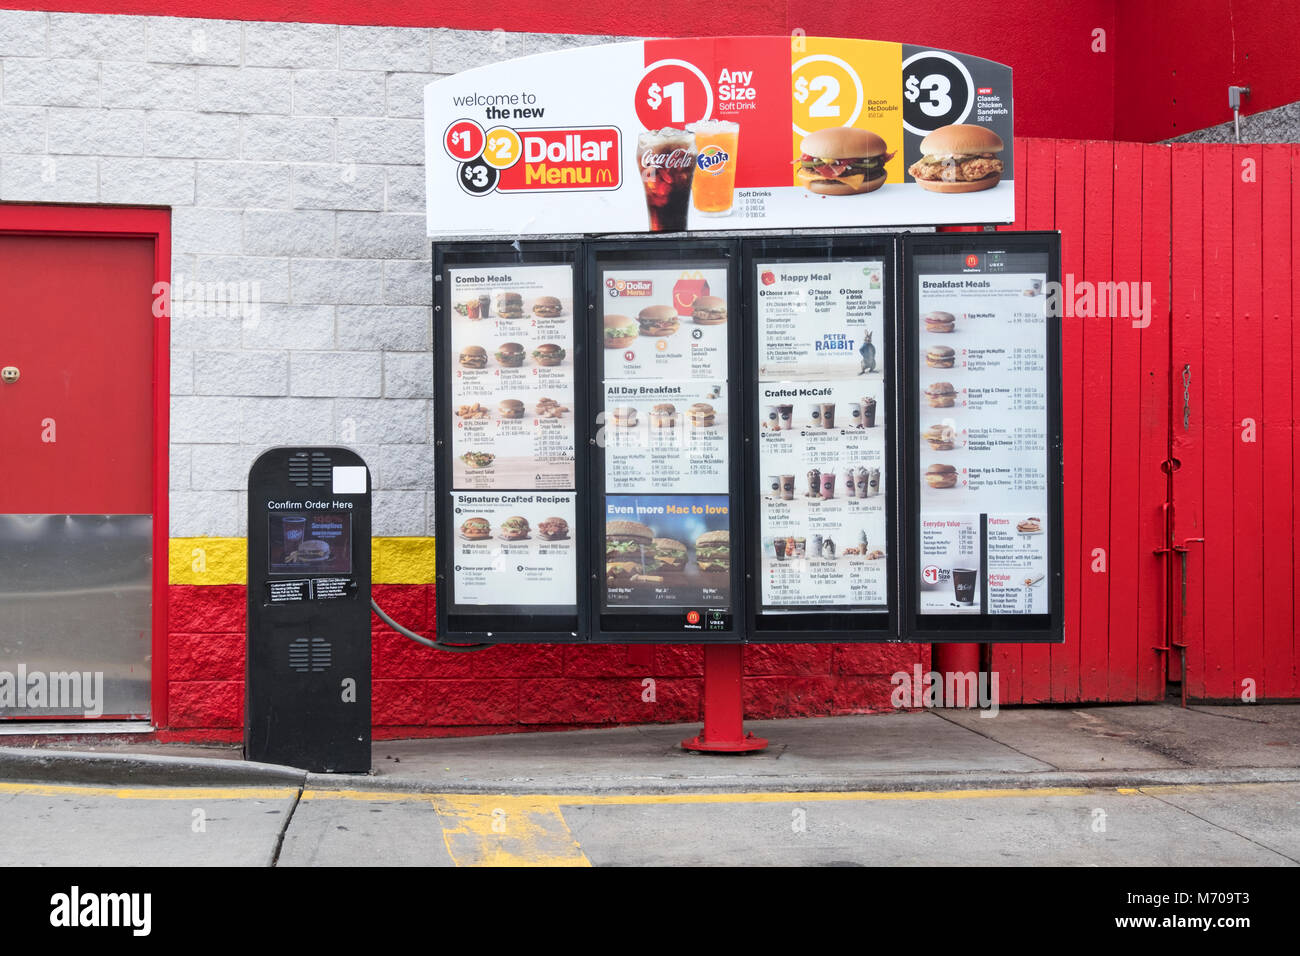 The menu for drive through customers at McDonald's fast food restaurant in Whitestone, Queens, New York - Stock Image